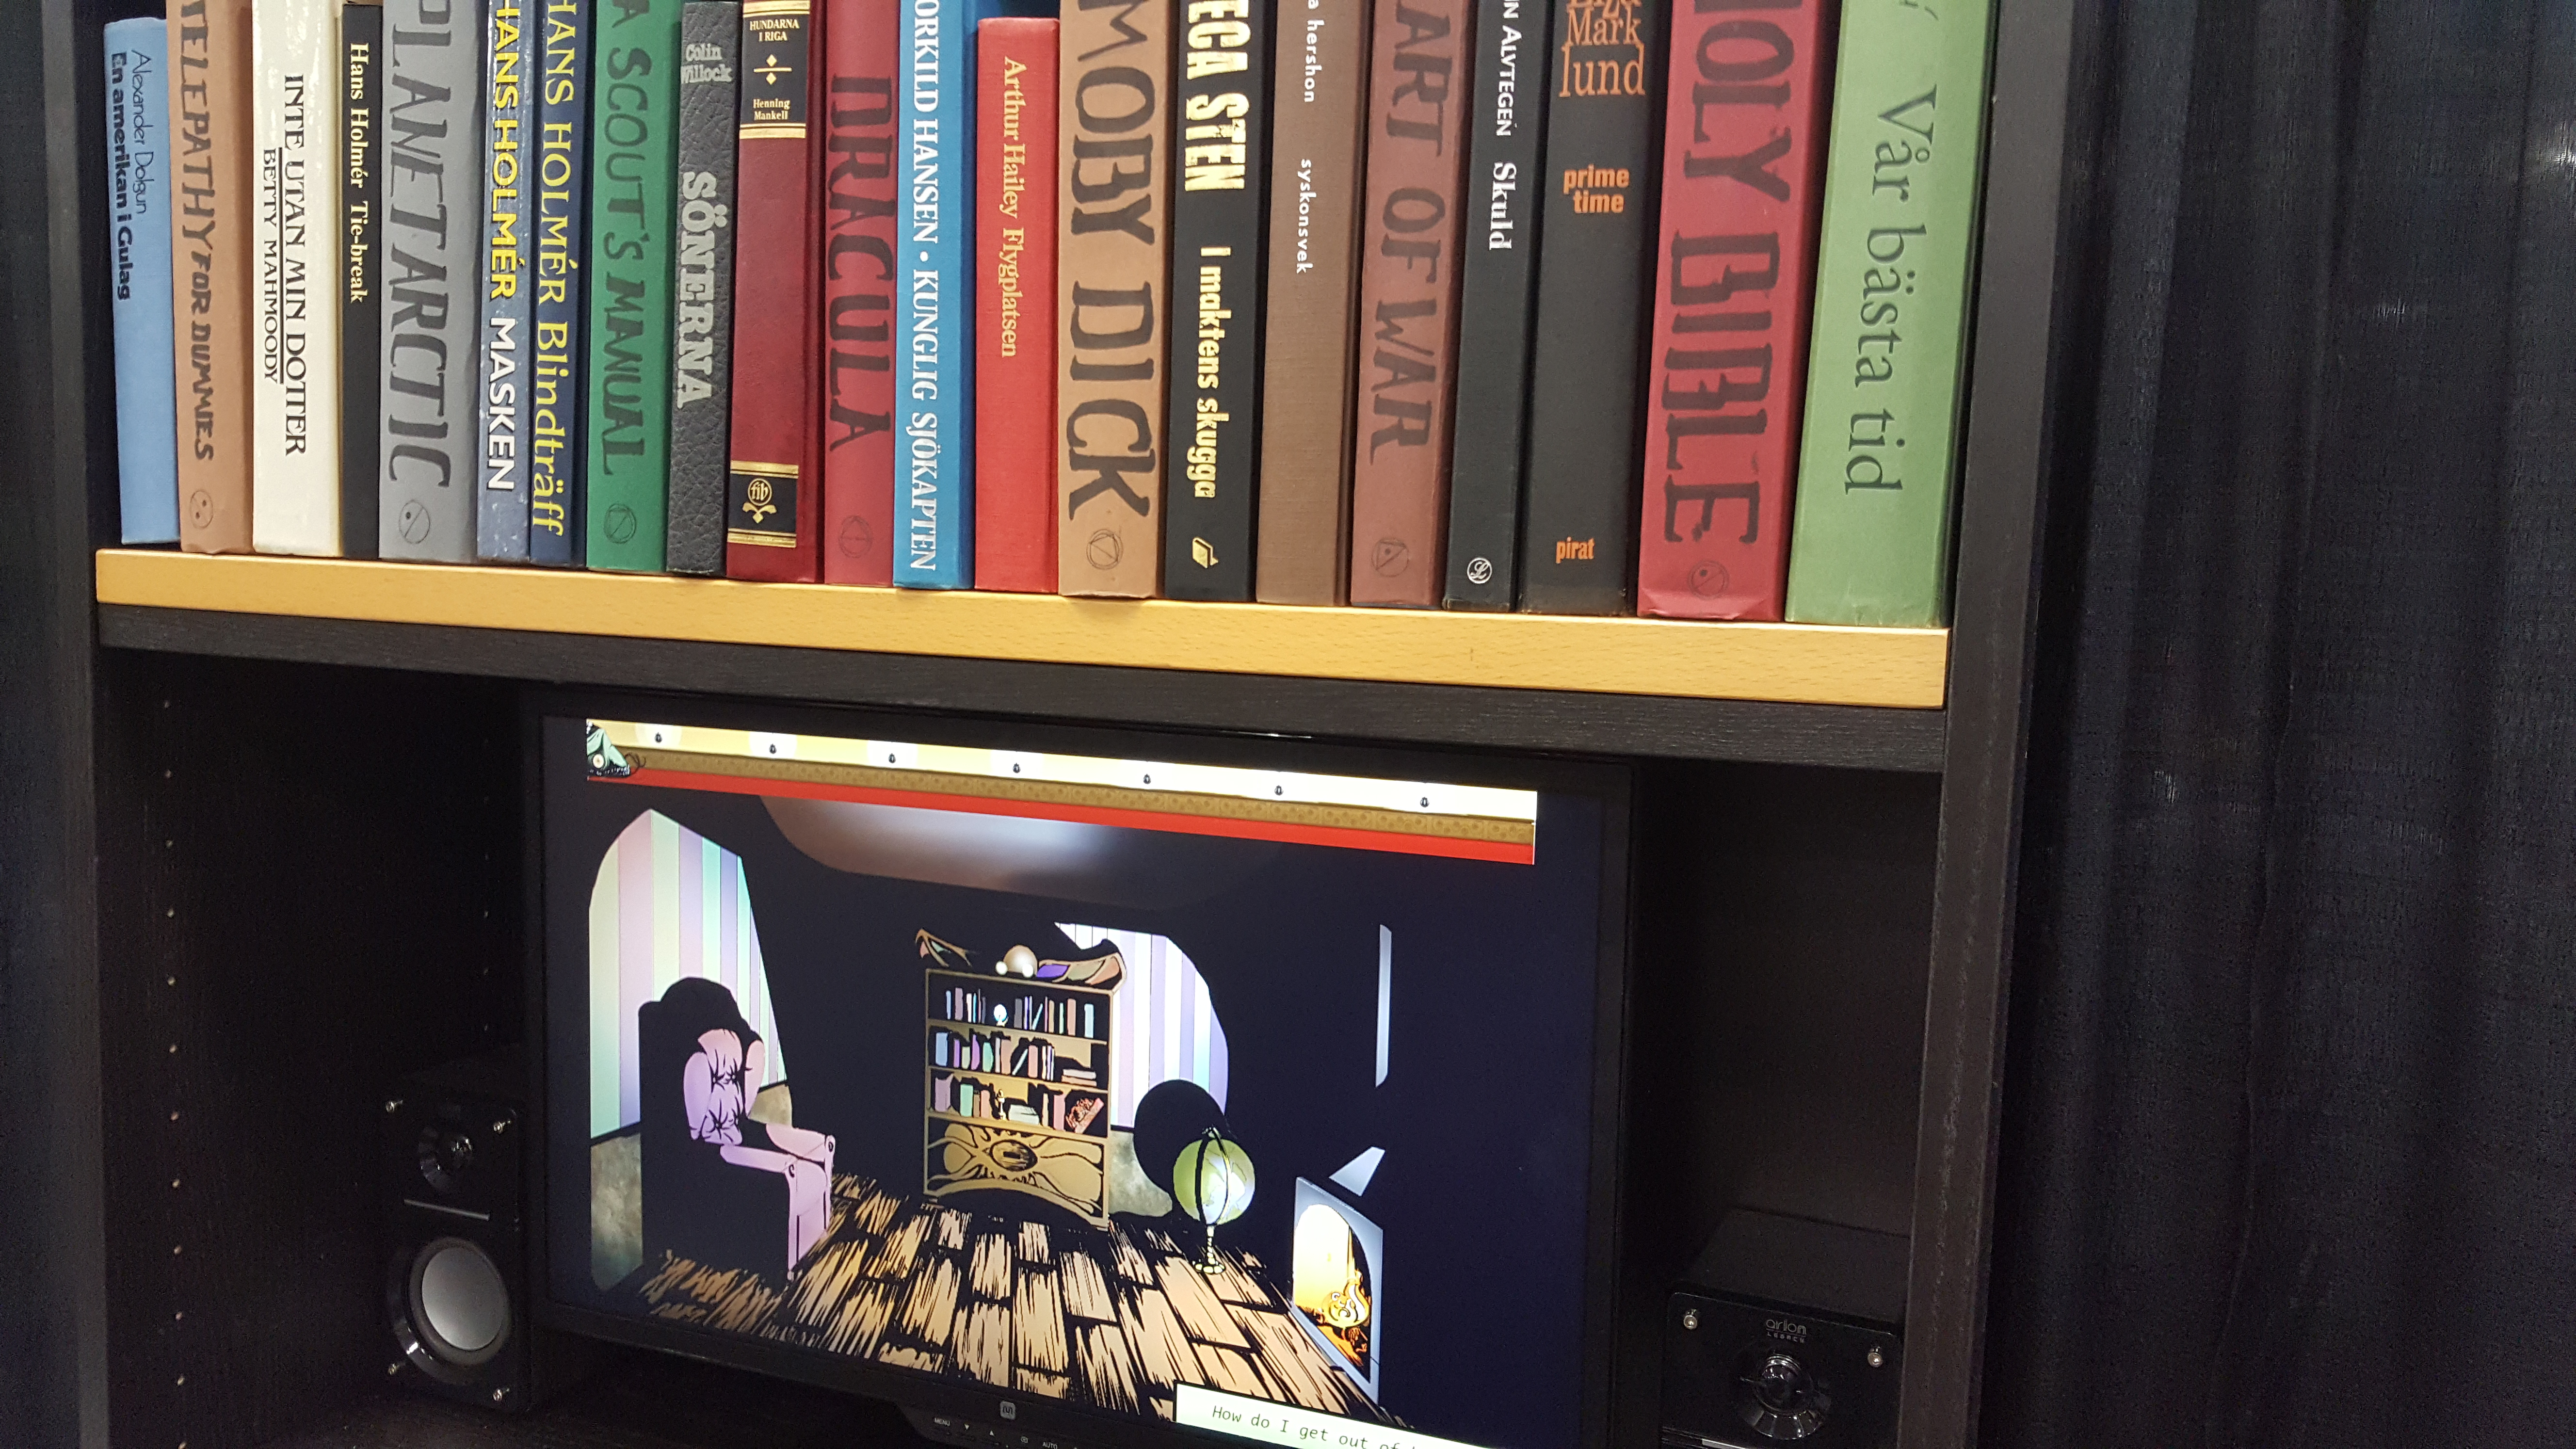 Puzzle Game Cryptogram Uses A Real Bookshelf To Open Secret Doors